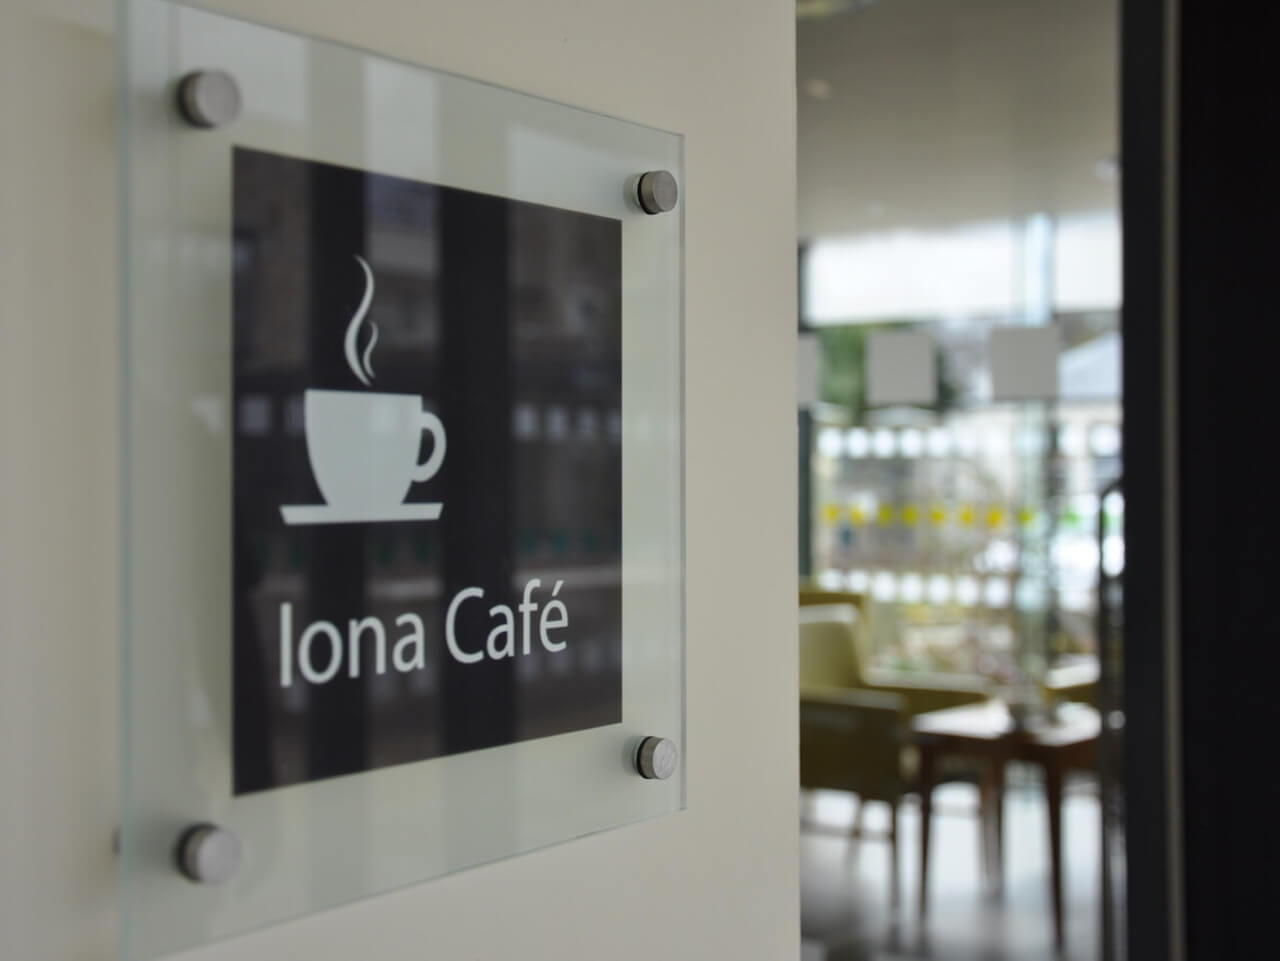 Glass mounted signage for the cafe with a pictogram of a coffee cup